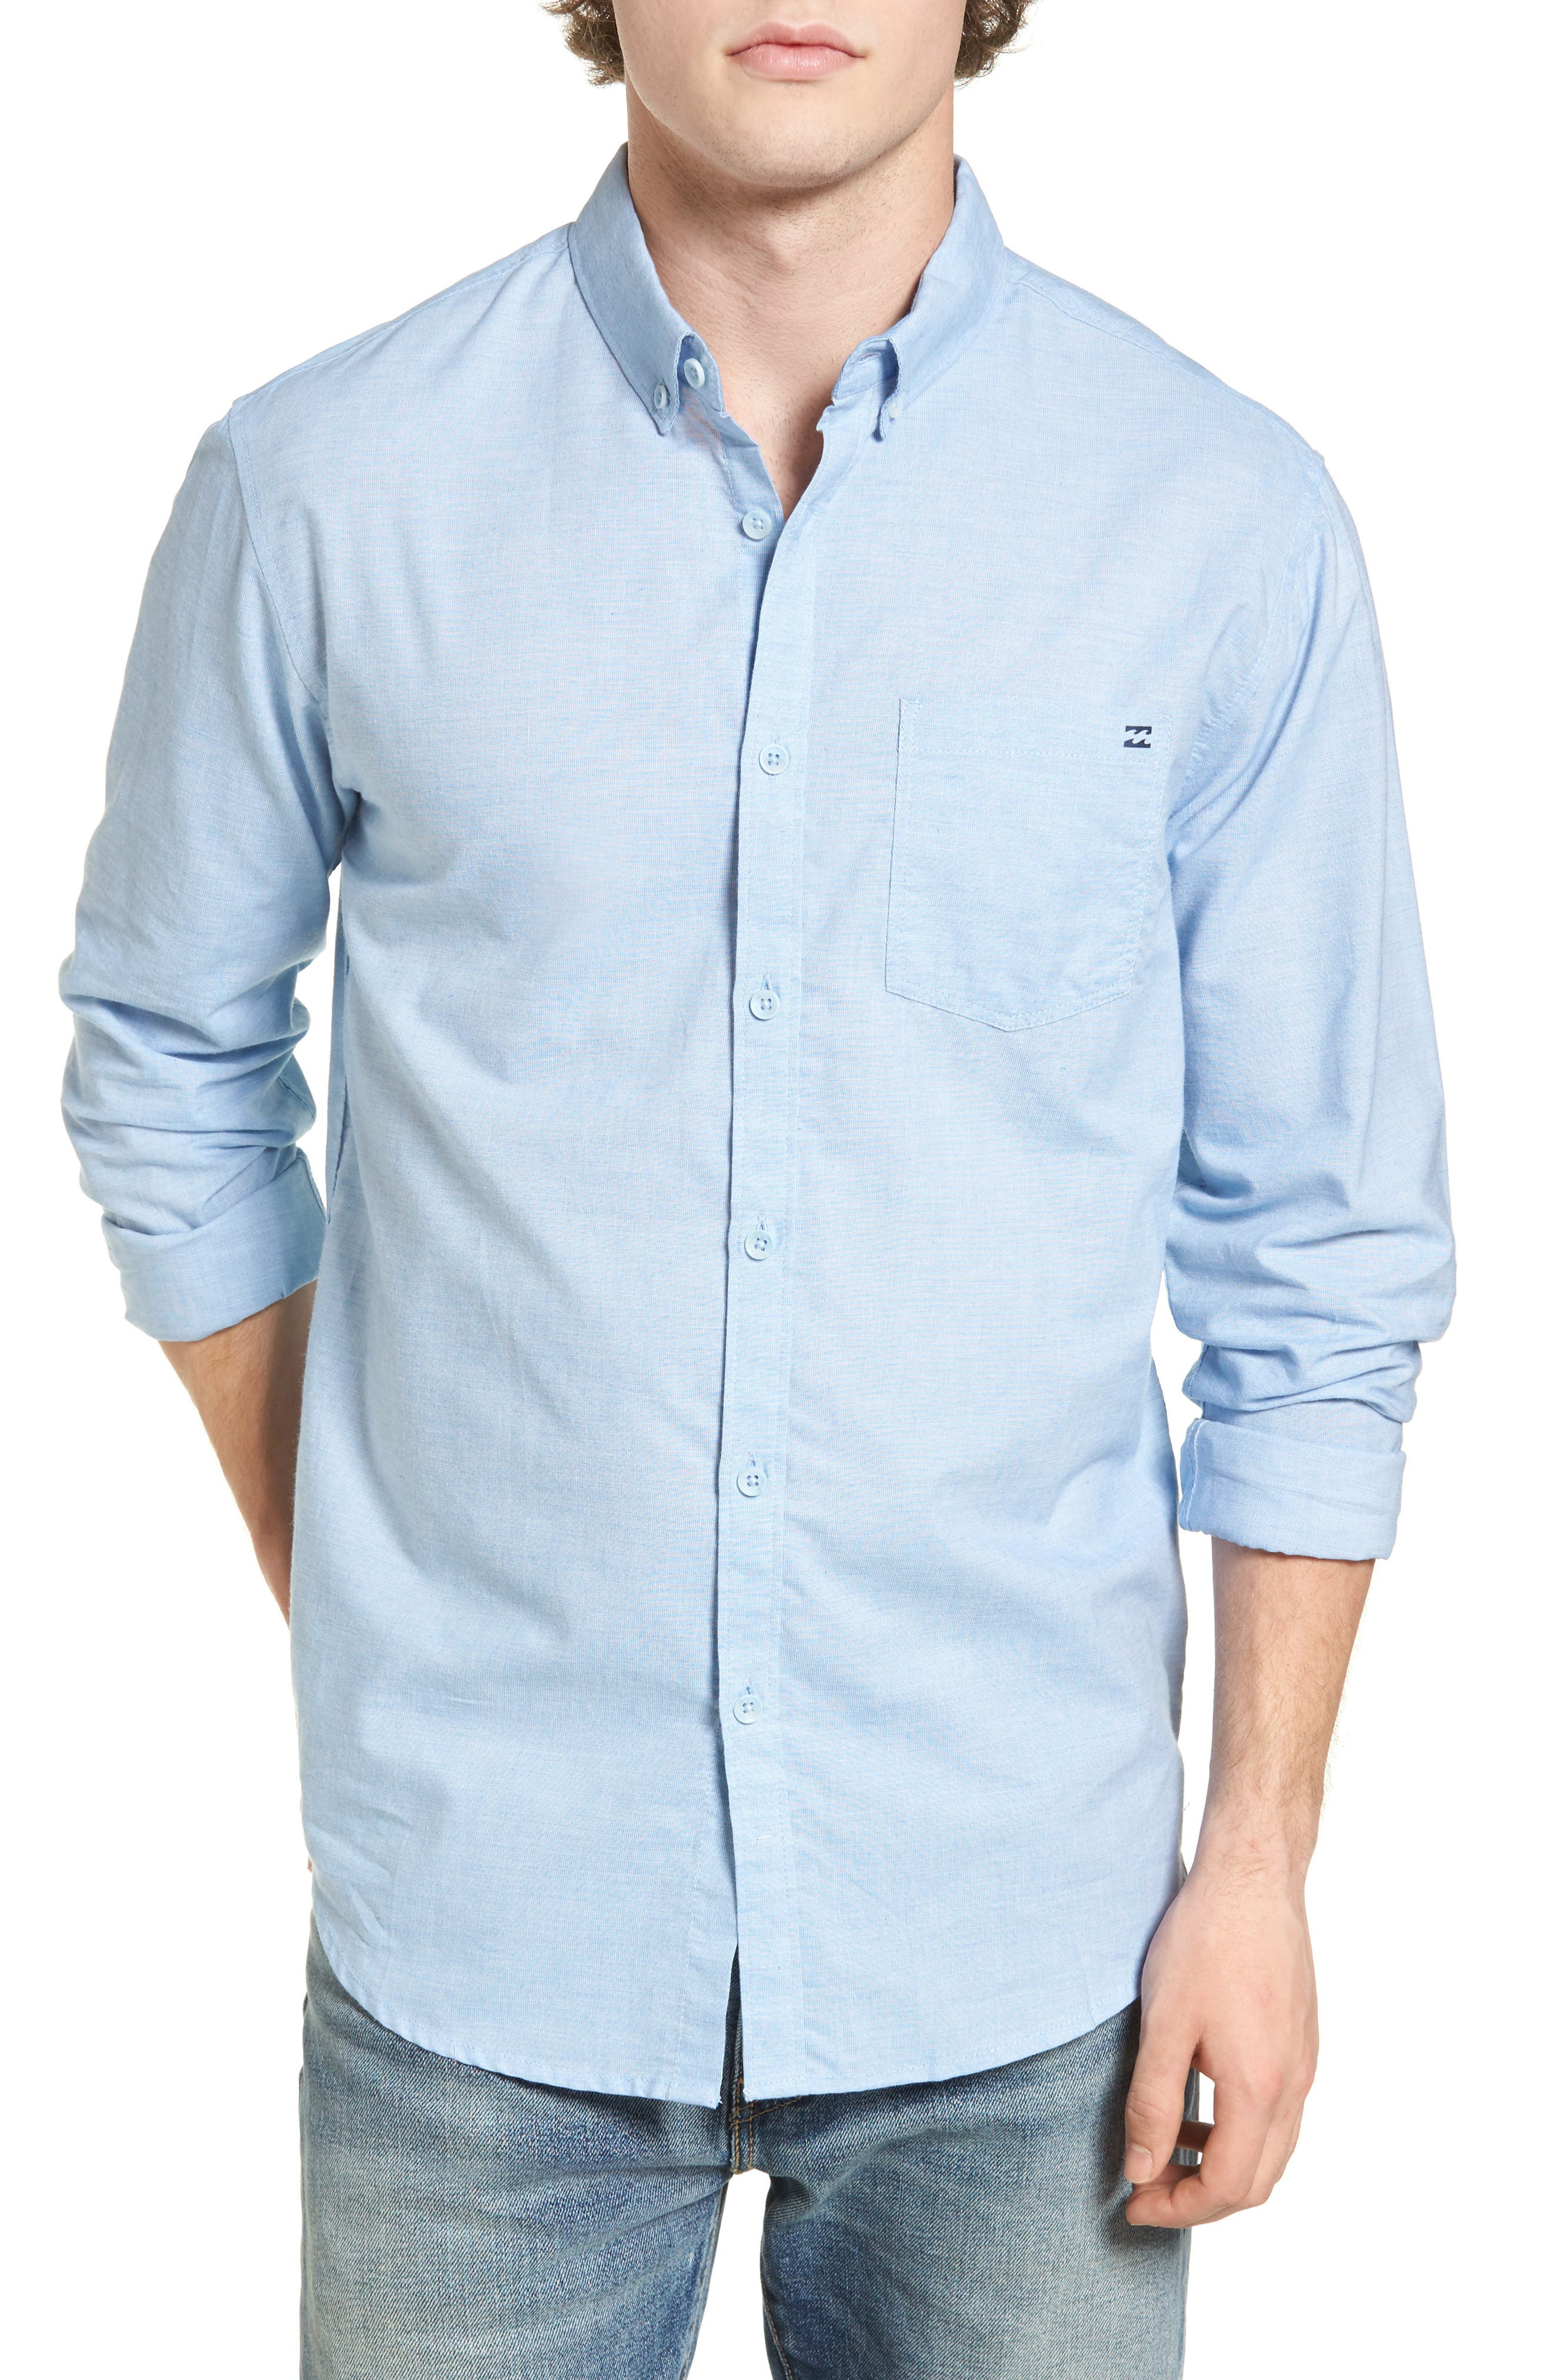 All Day Chambray Shirt,                         Main,                         color, Light Blue